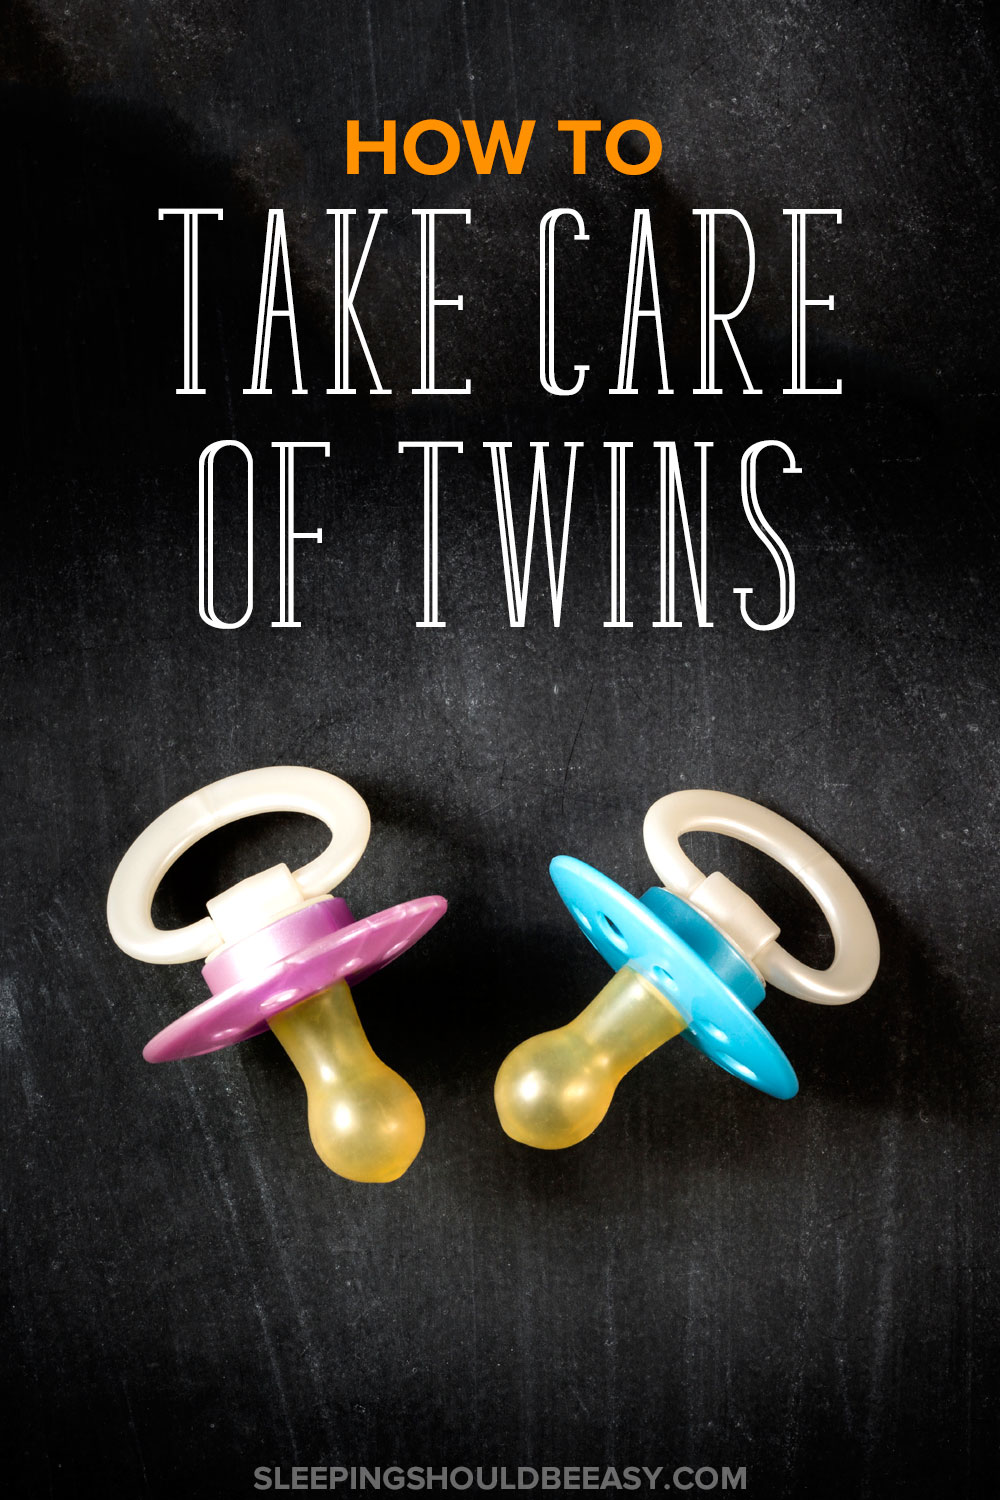 Must-read tips for surviving life with newborn twins. It's hard enough caring for one baby. From sleeping to feeding, check out this article on how to take care of twins.